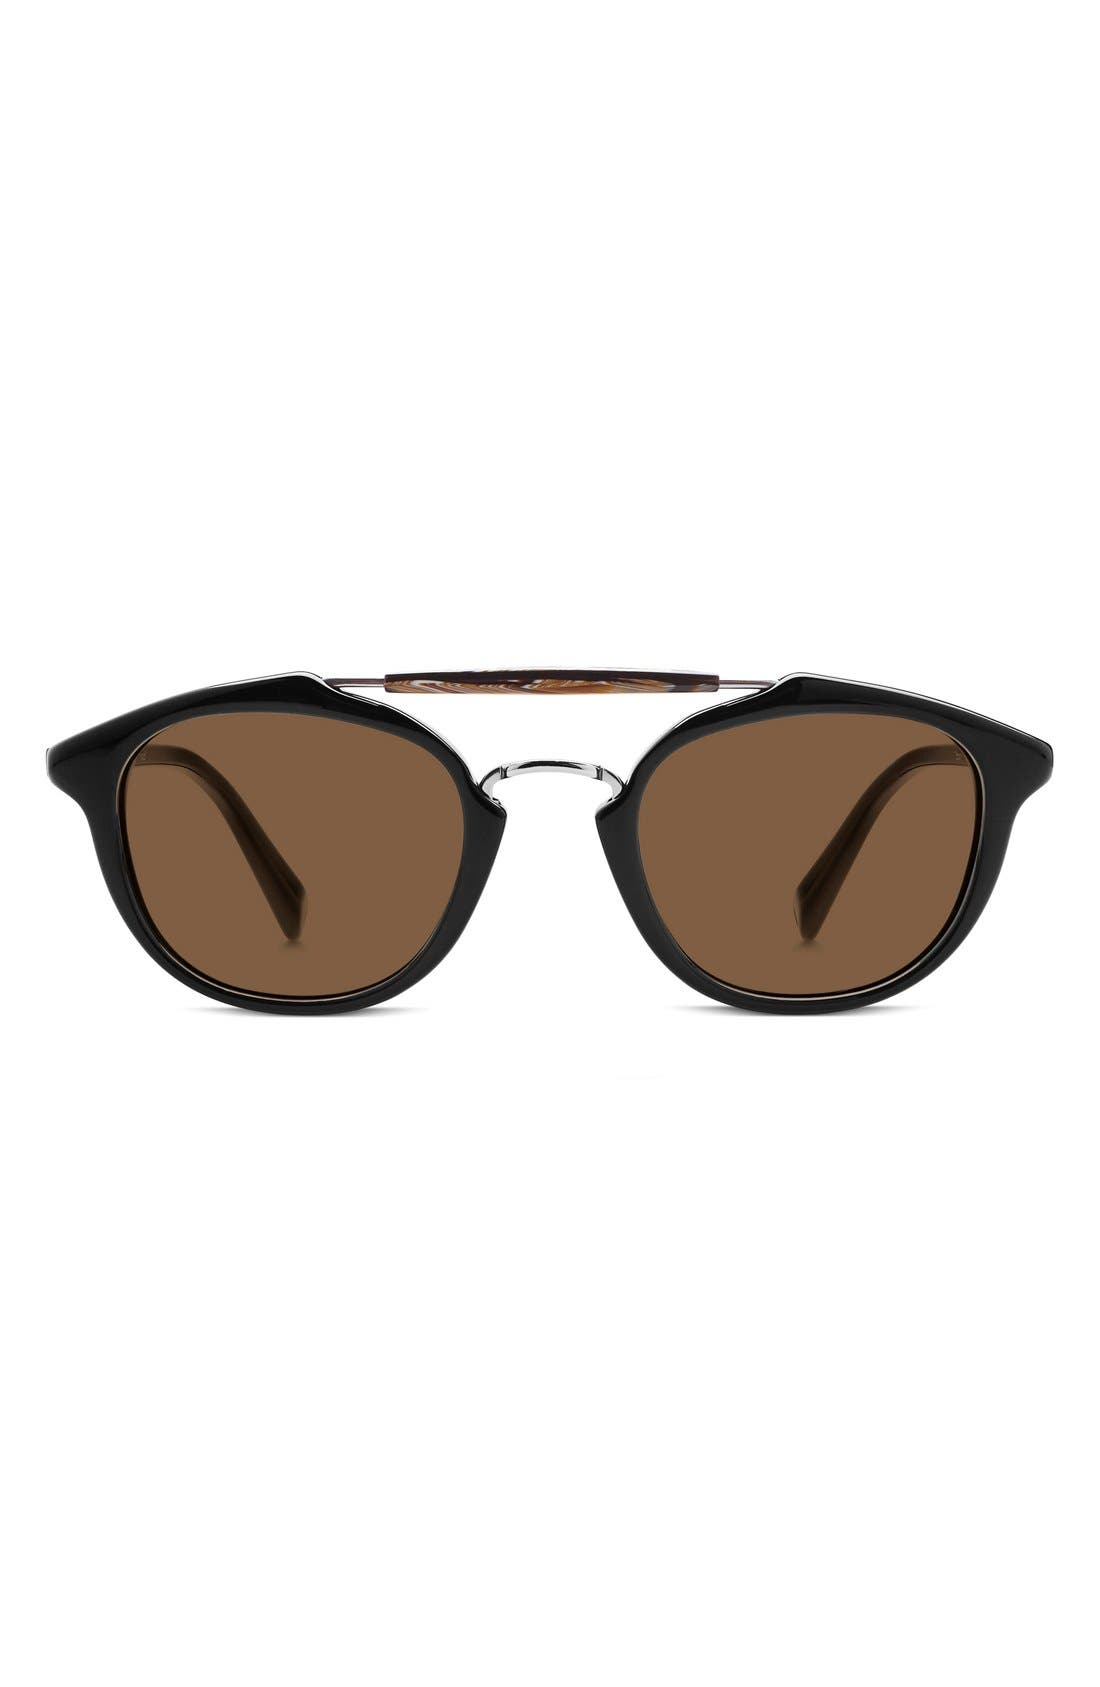 Main Image - Warby Parker 'Teddy' 47mm Polarized Sunglasses